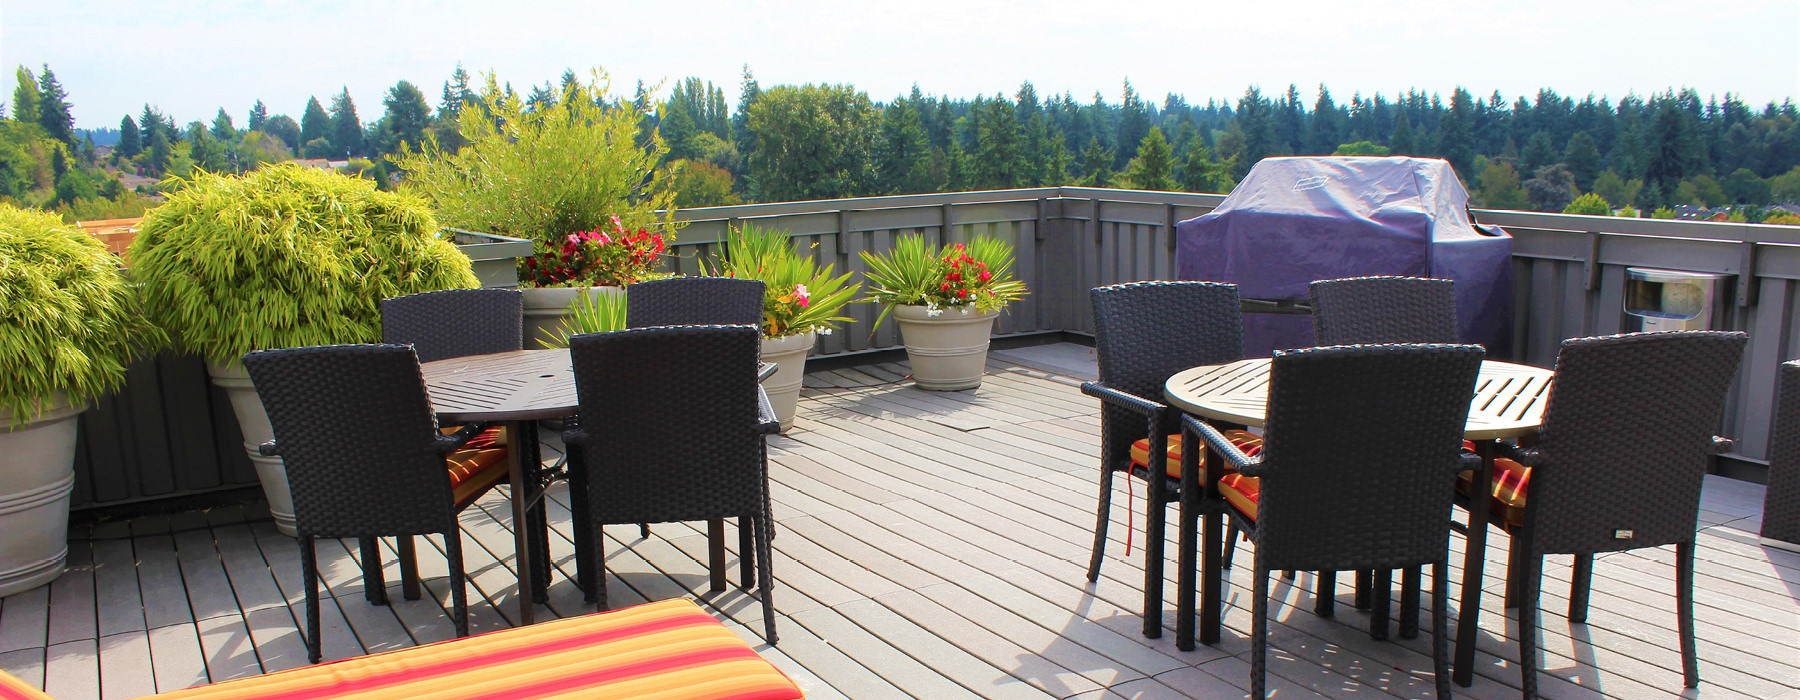 open rooftop deck with wooded neighborhood views